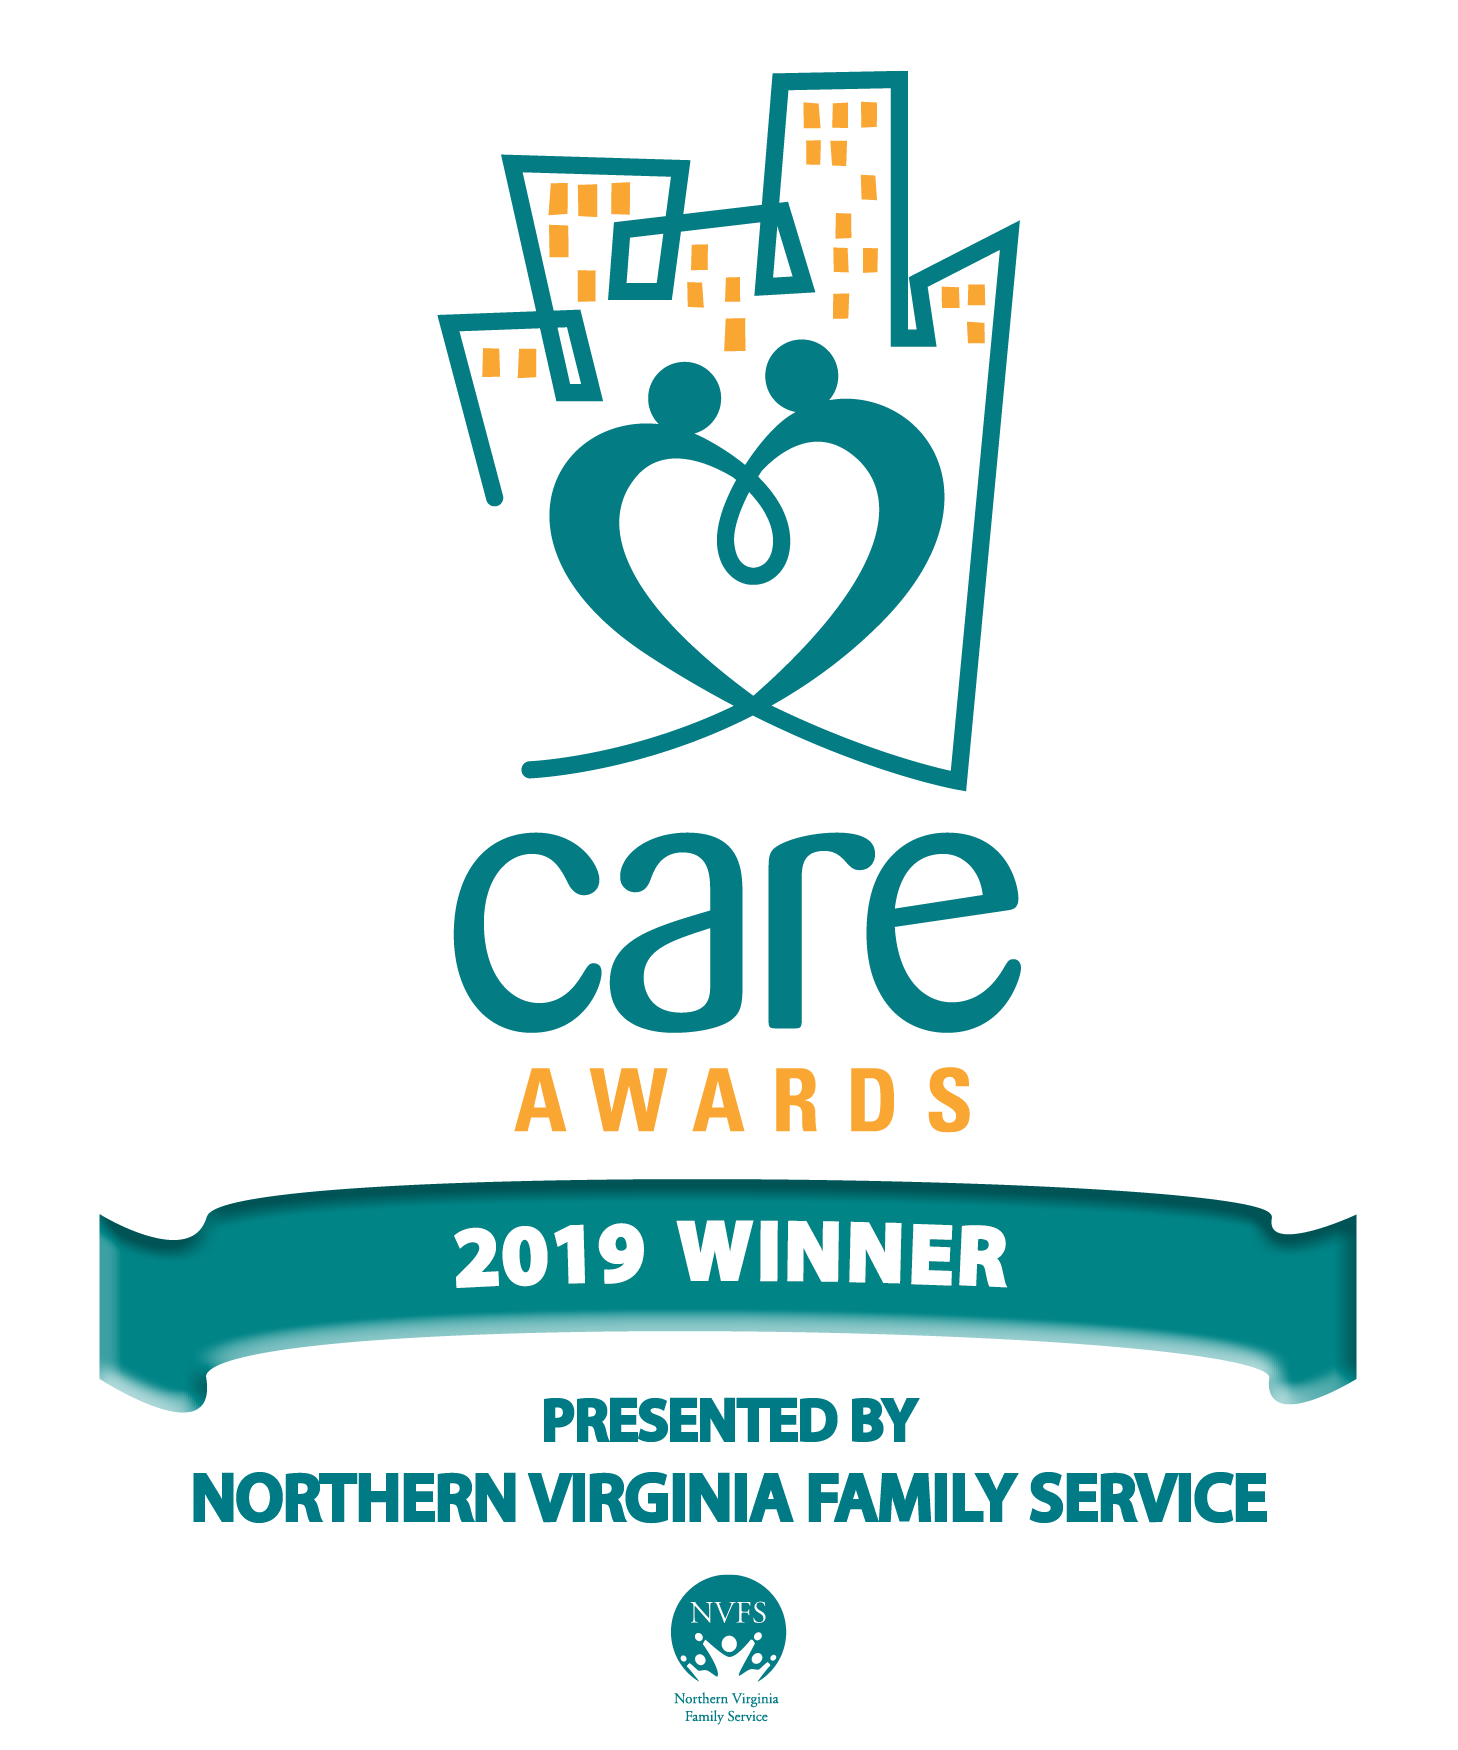 BOWA Awards - CARE Award